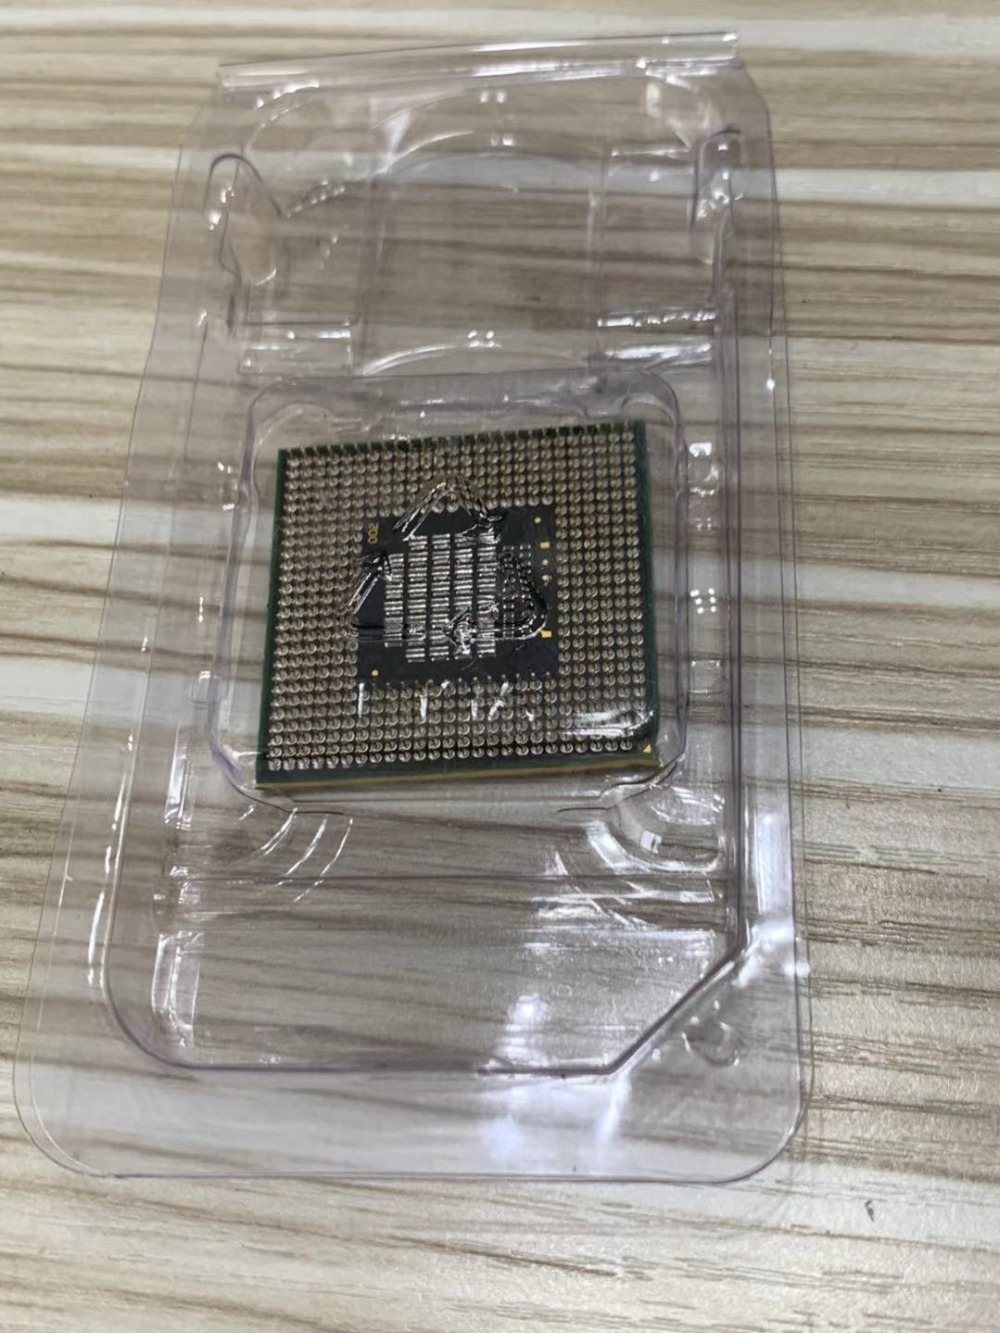 T8100 8100 CPU 3M Cache/2.1GHz/800/Dual-Core Socket 479 Laptop processor for GM45 PM45 free shipping t7300 cpu 4m socket 479 cache 2 0ghz 800 dual core processor support 965